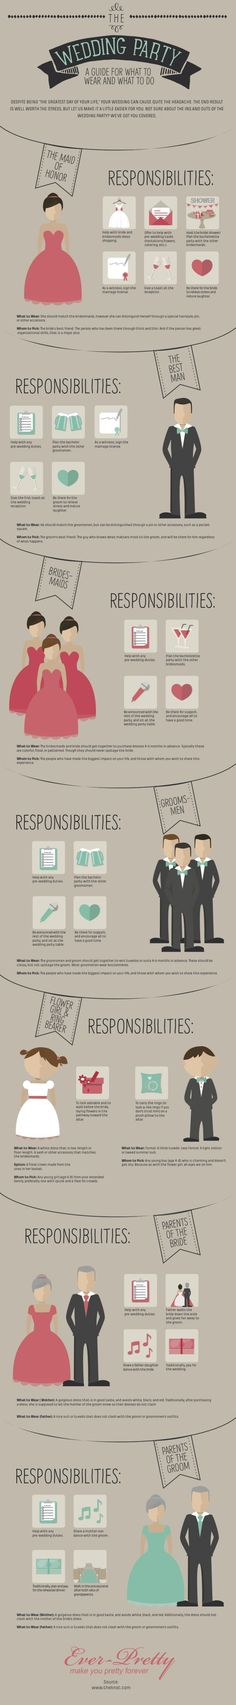 The Wedding Party Infographic